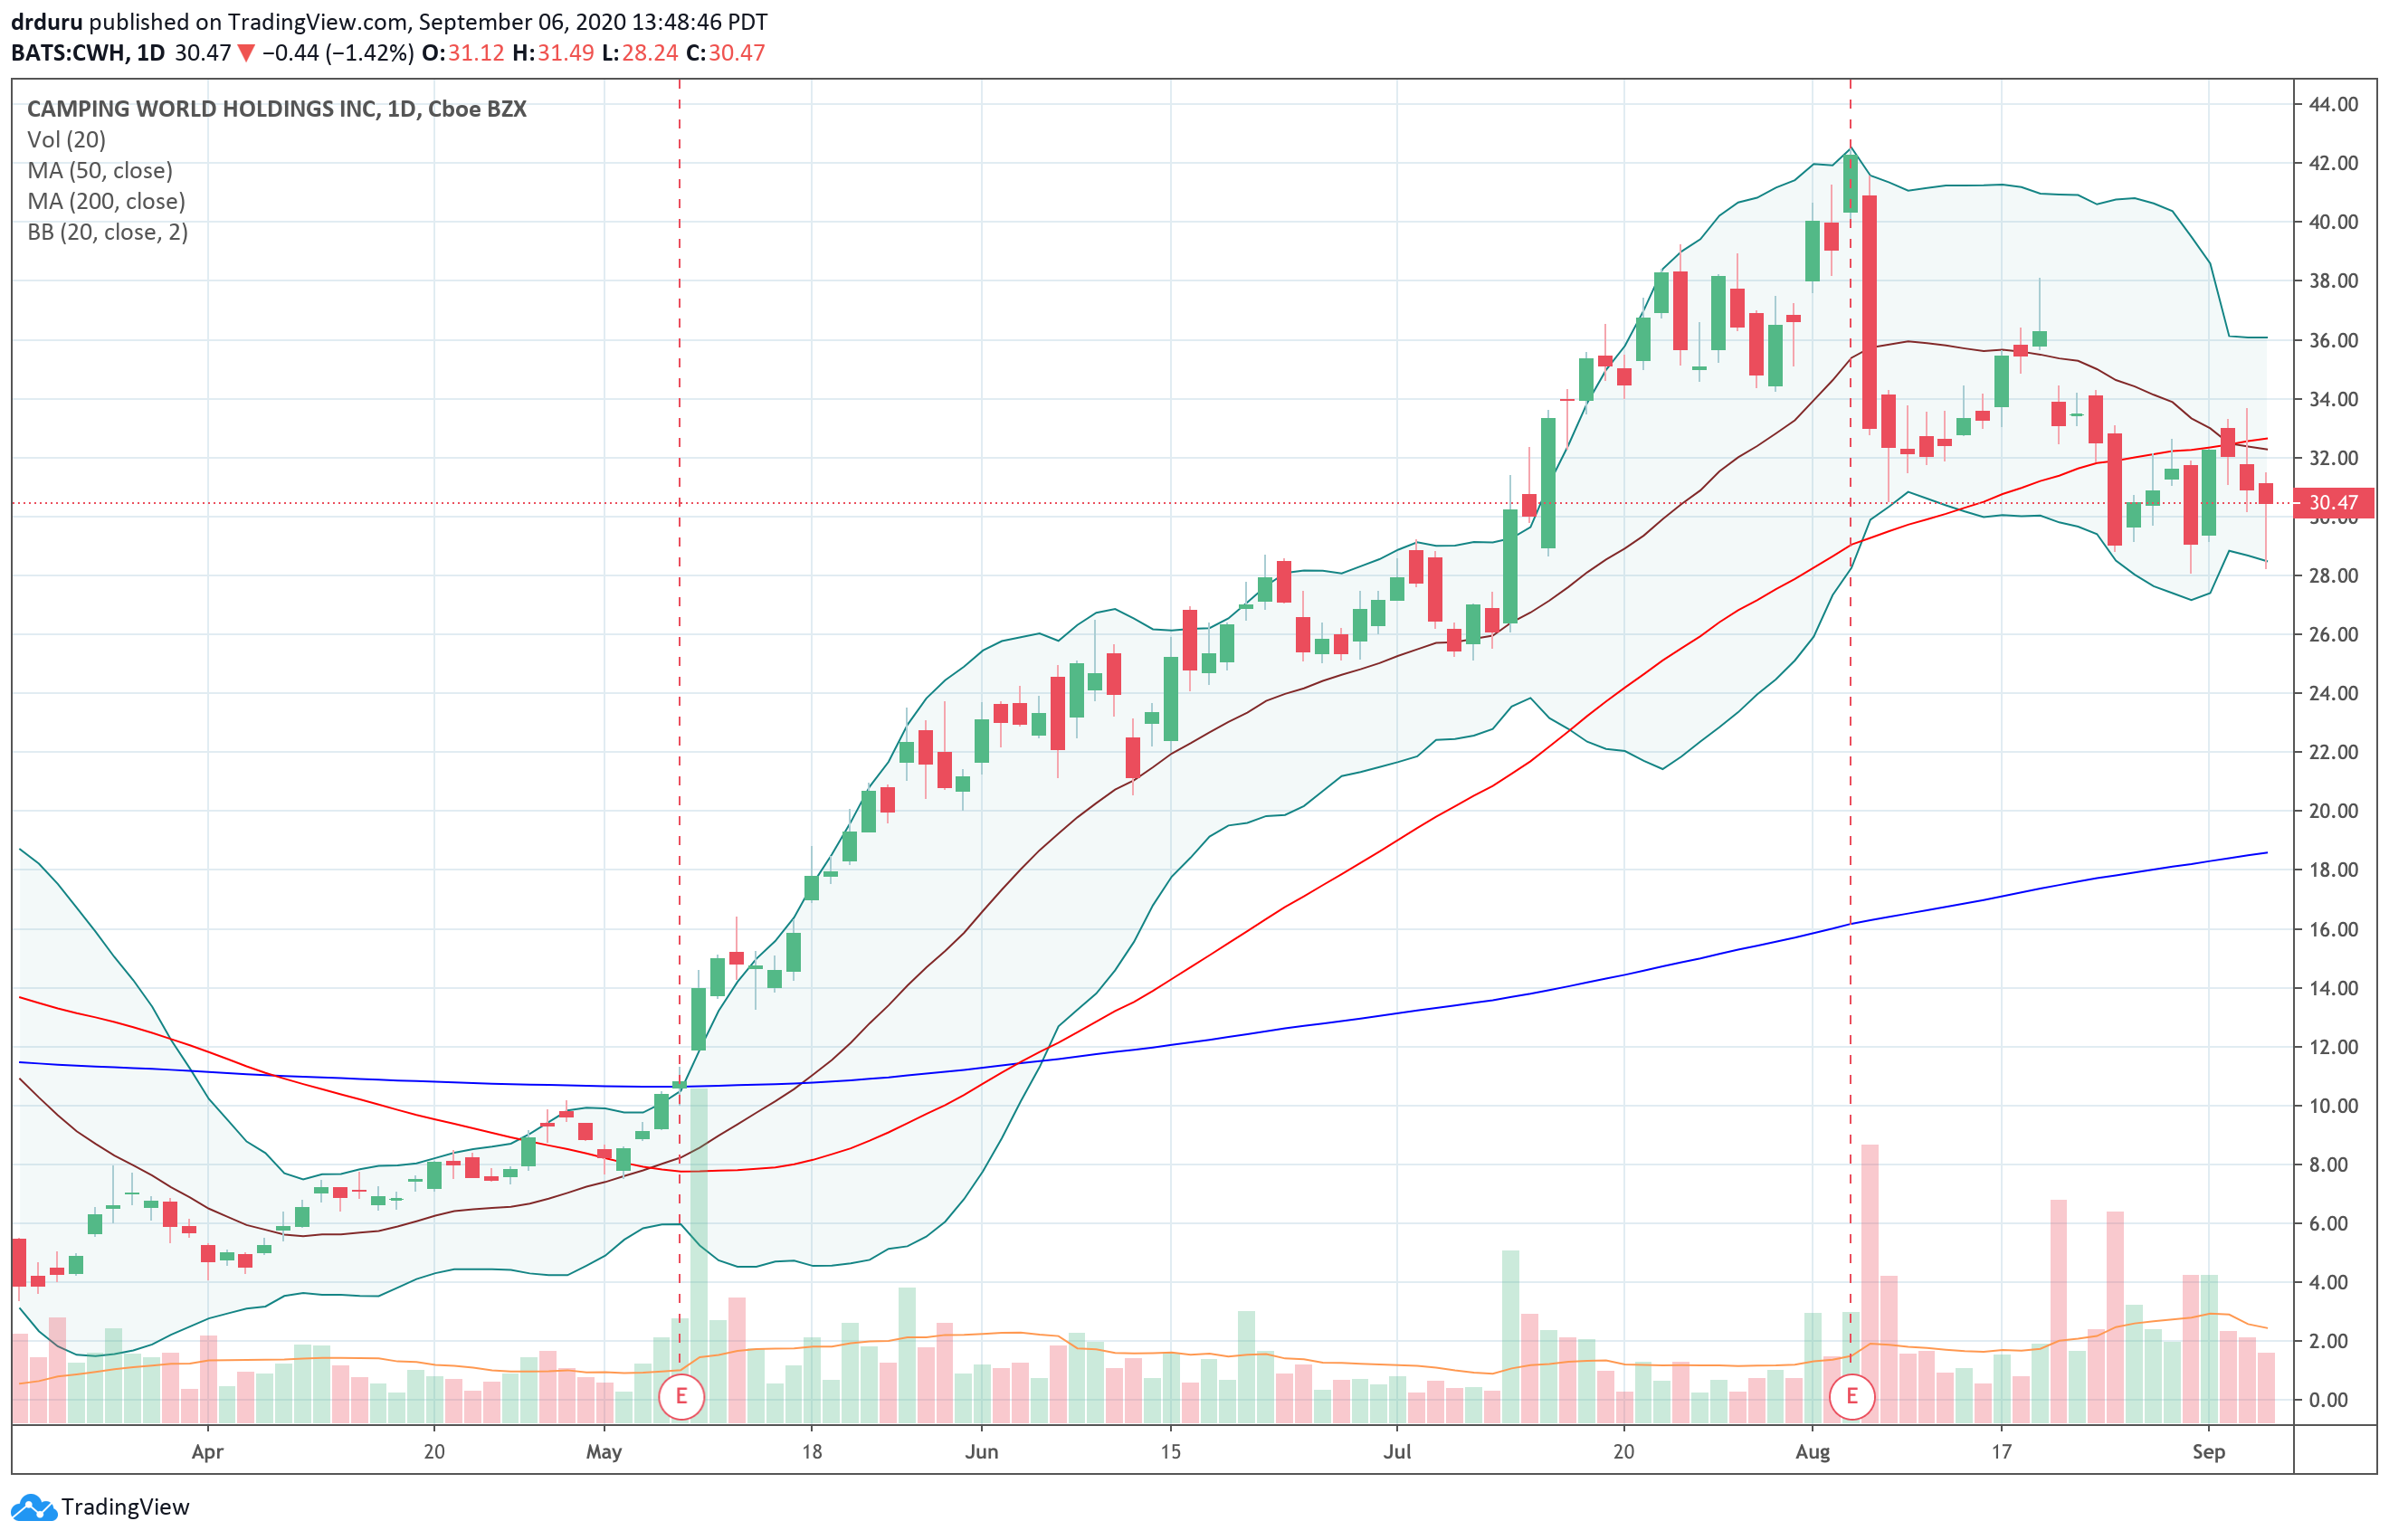 Camping World Holdings (CWH) is trying to stabilize under its 50DMA after a sharp post-earnings sell-off.